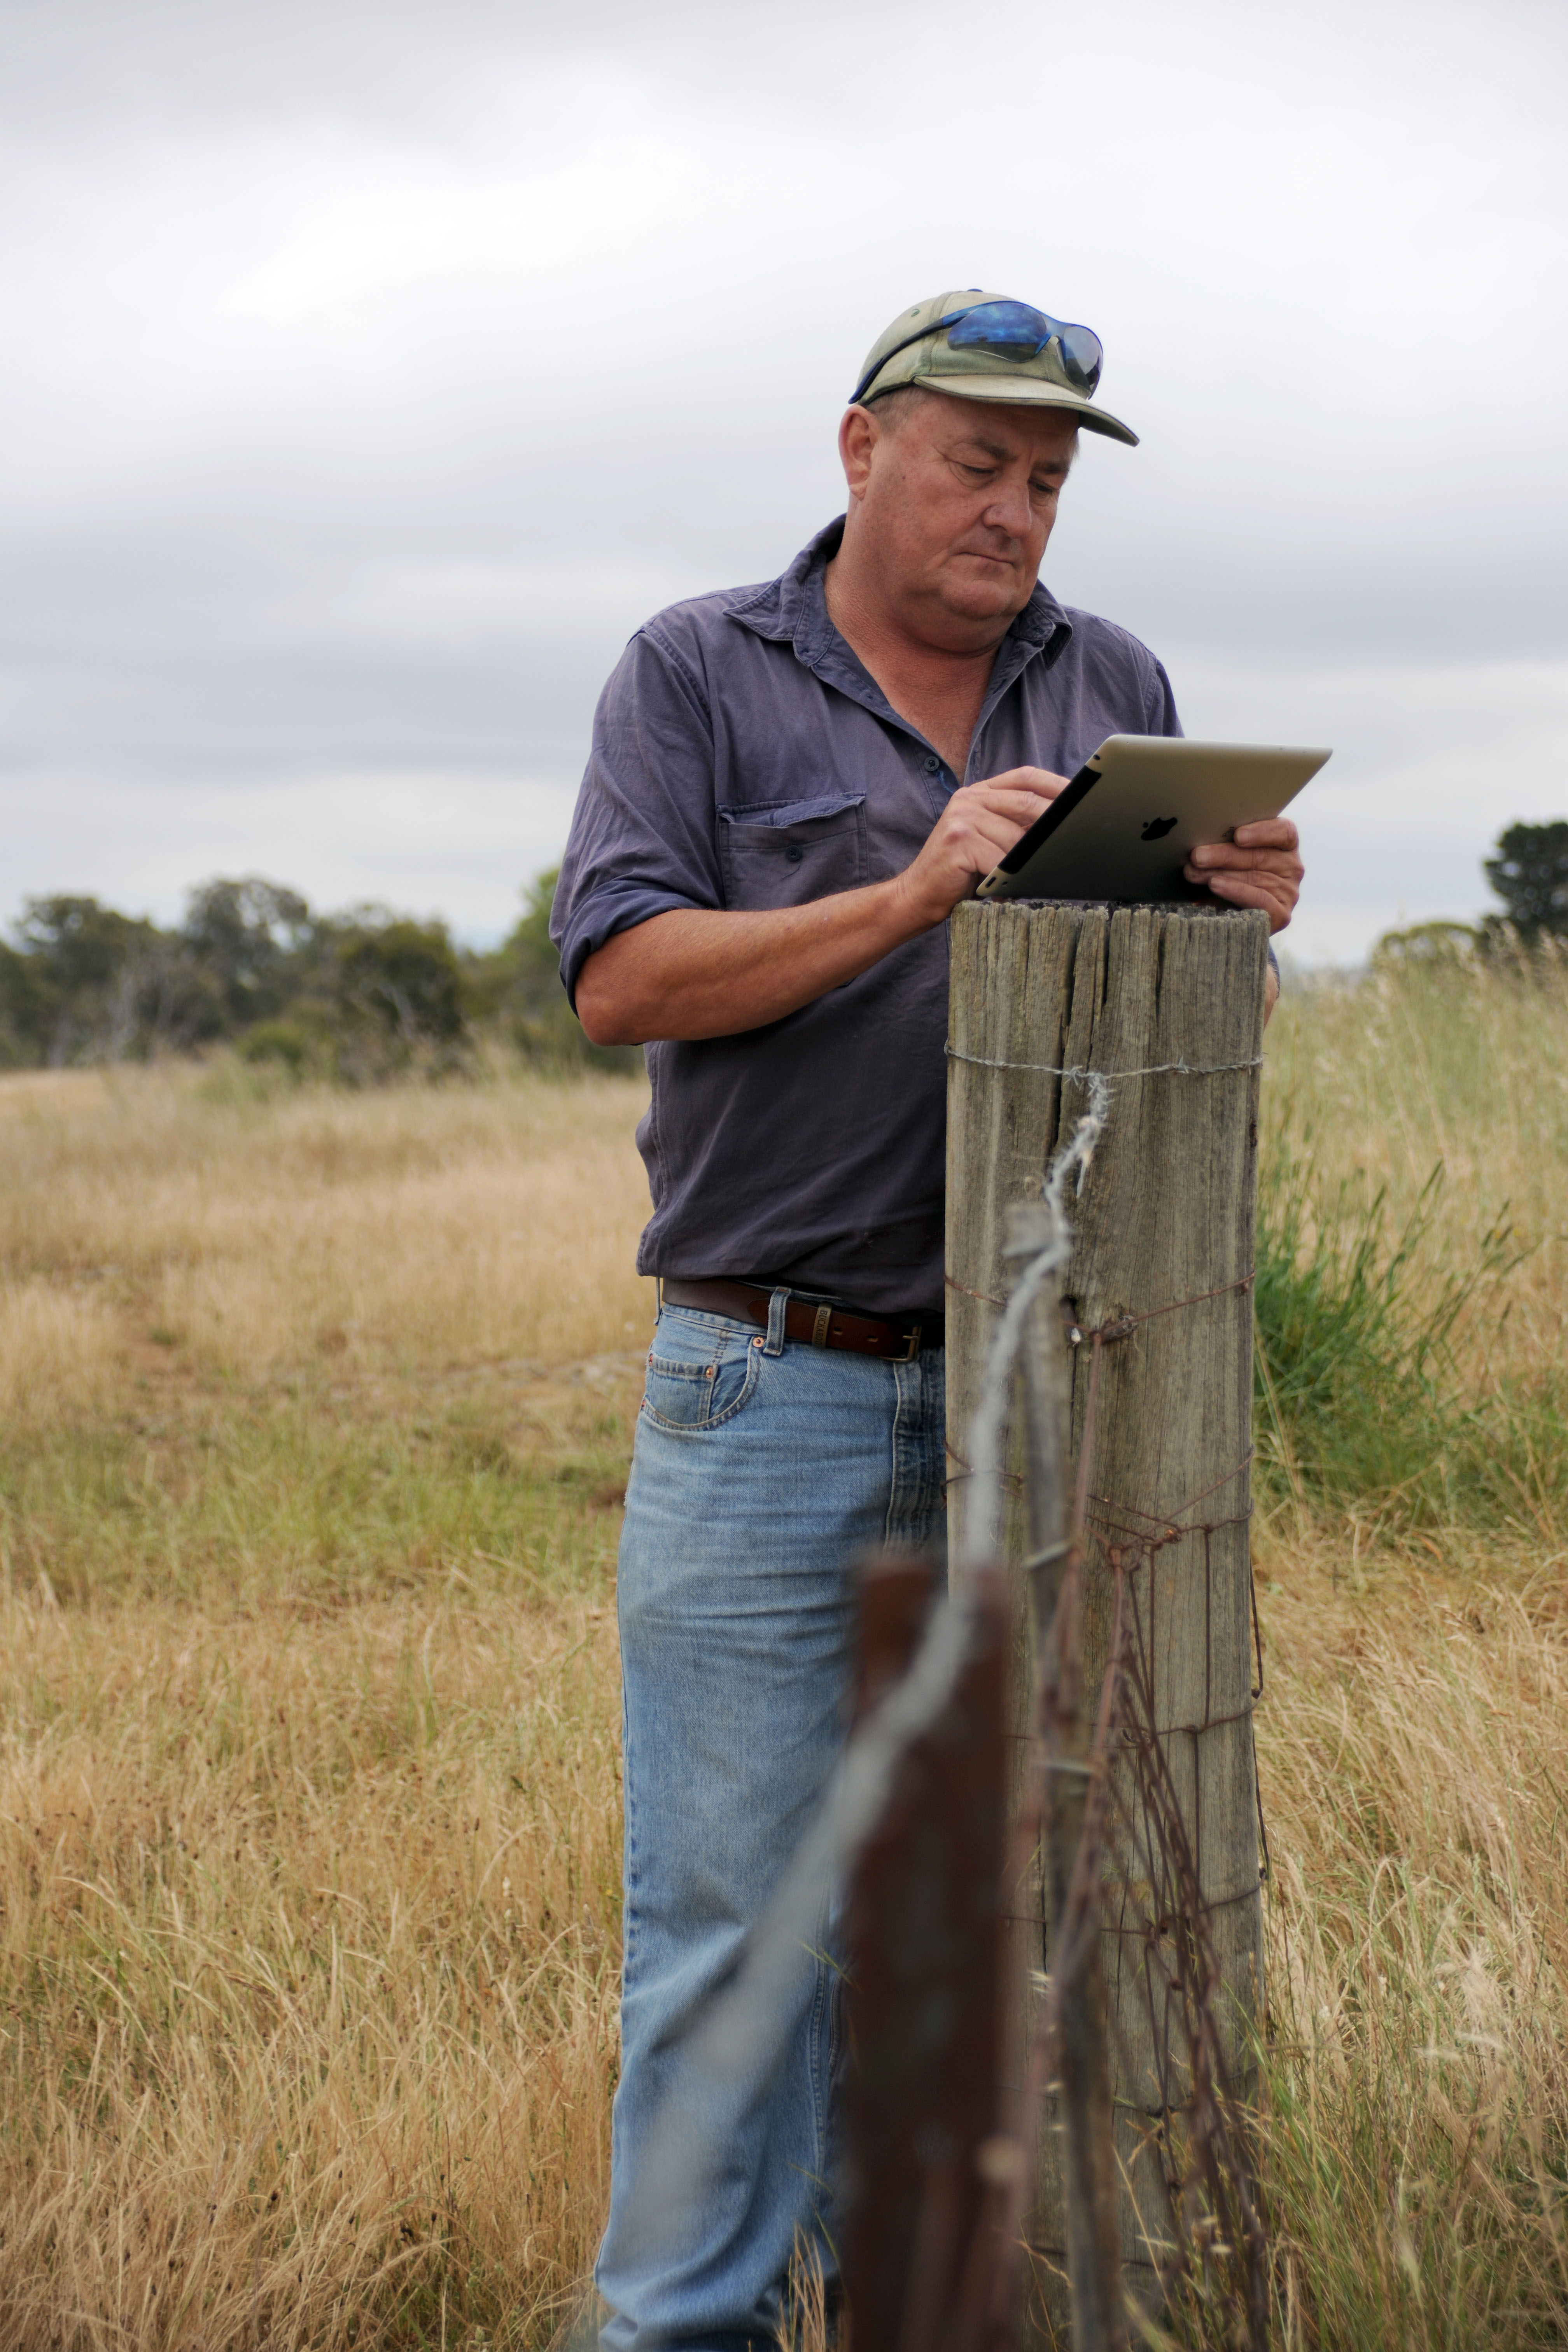 Farmer with ipad